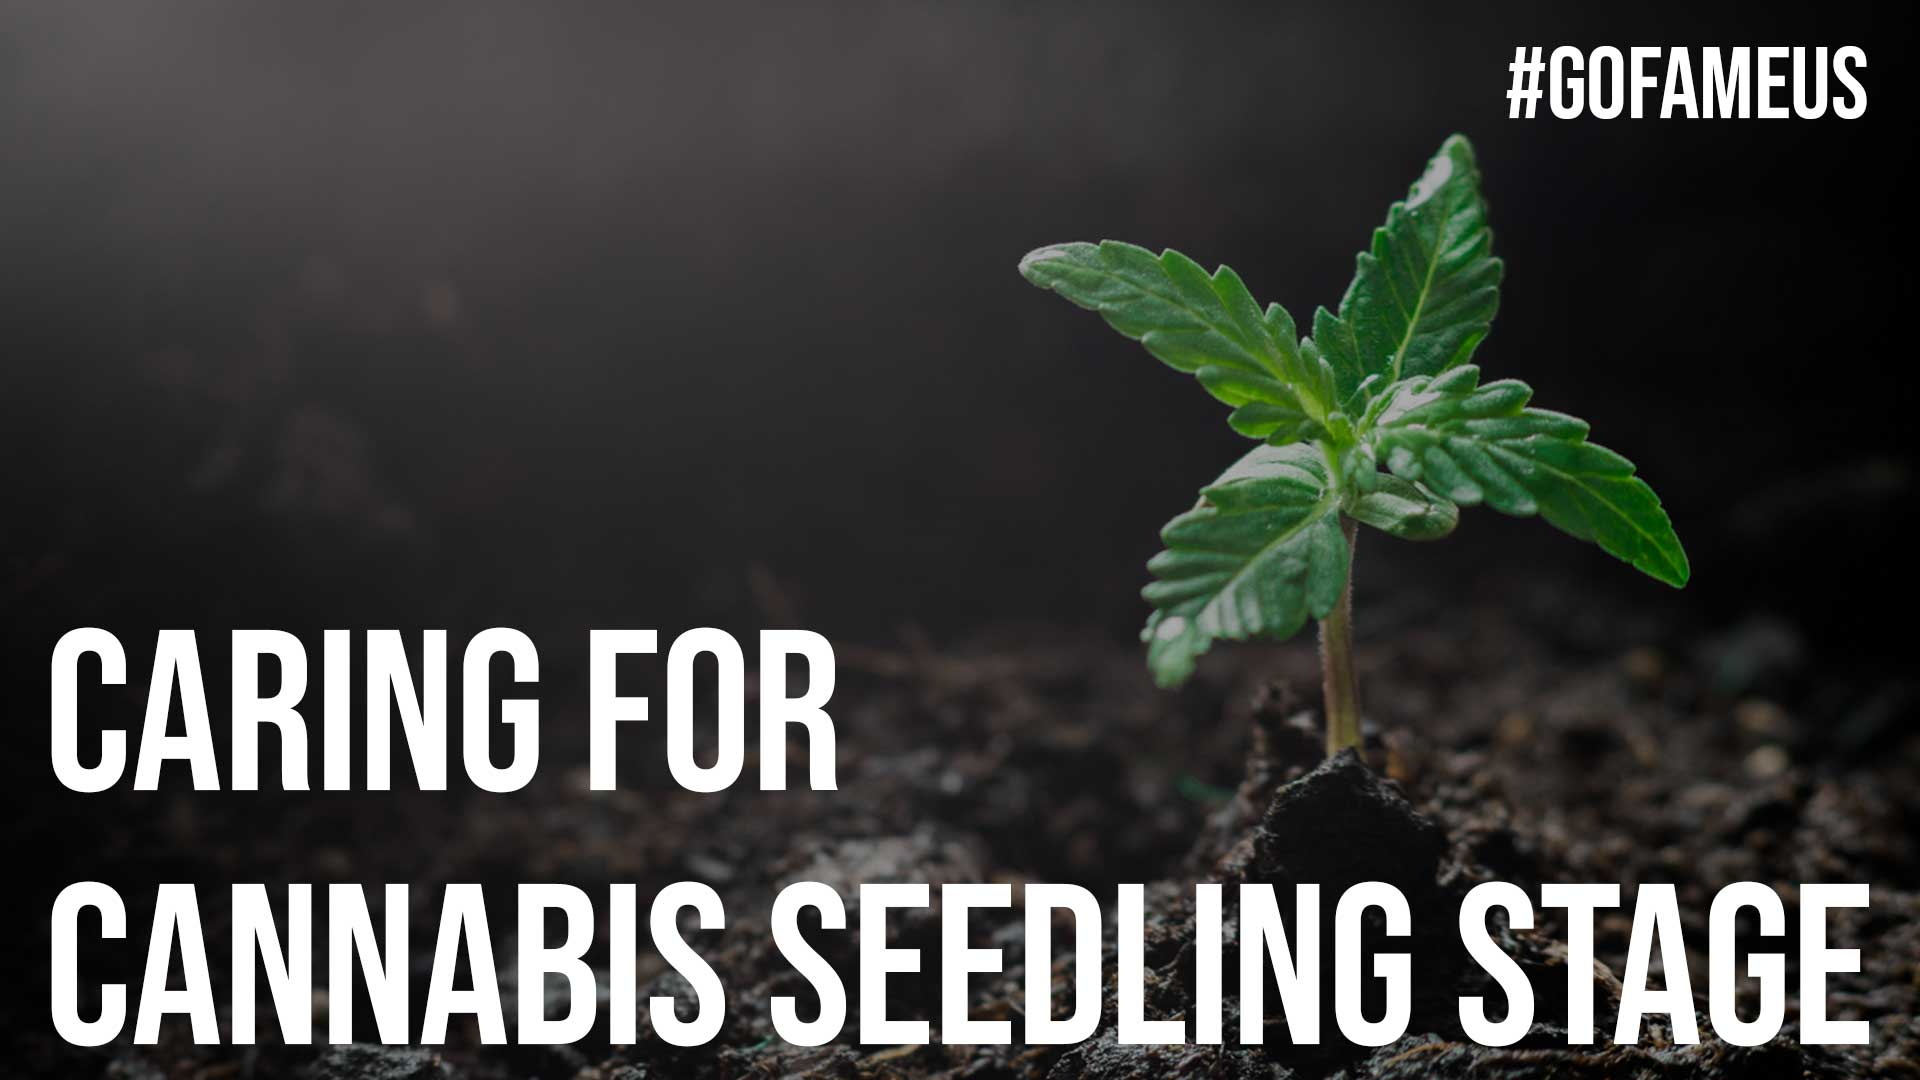 Caring For Cannabis Seedling Stage